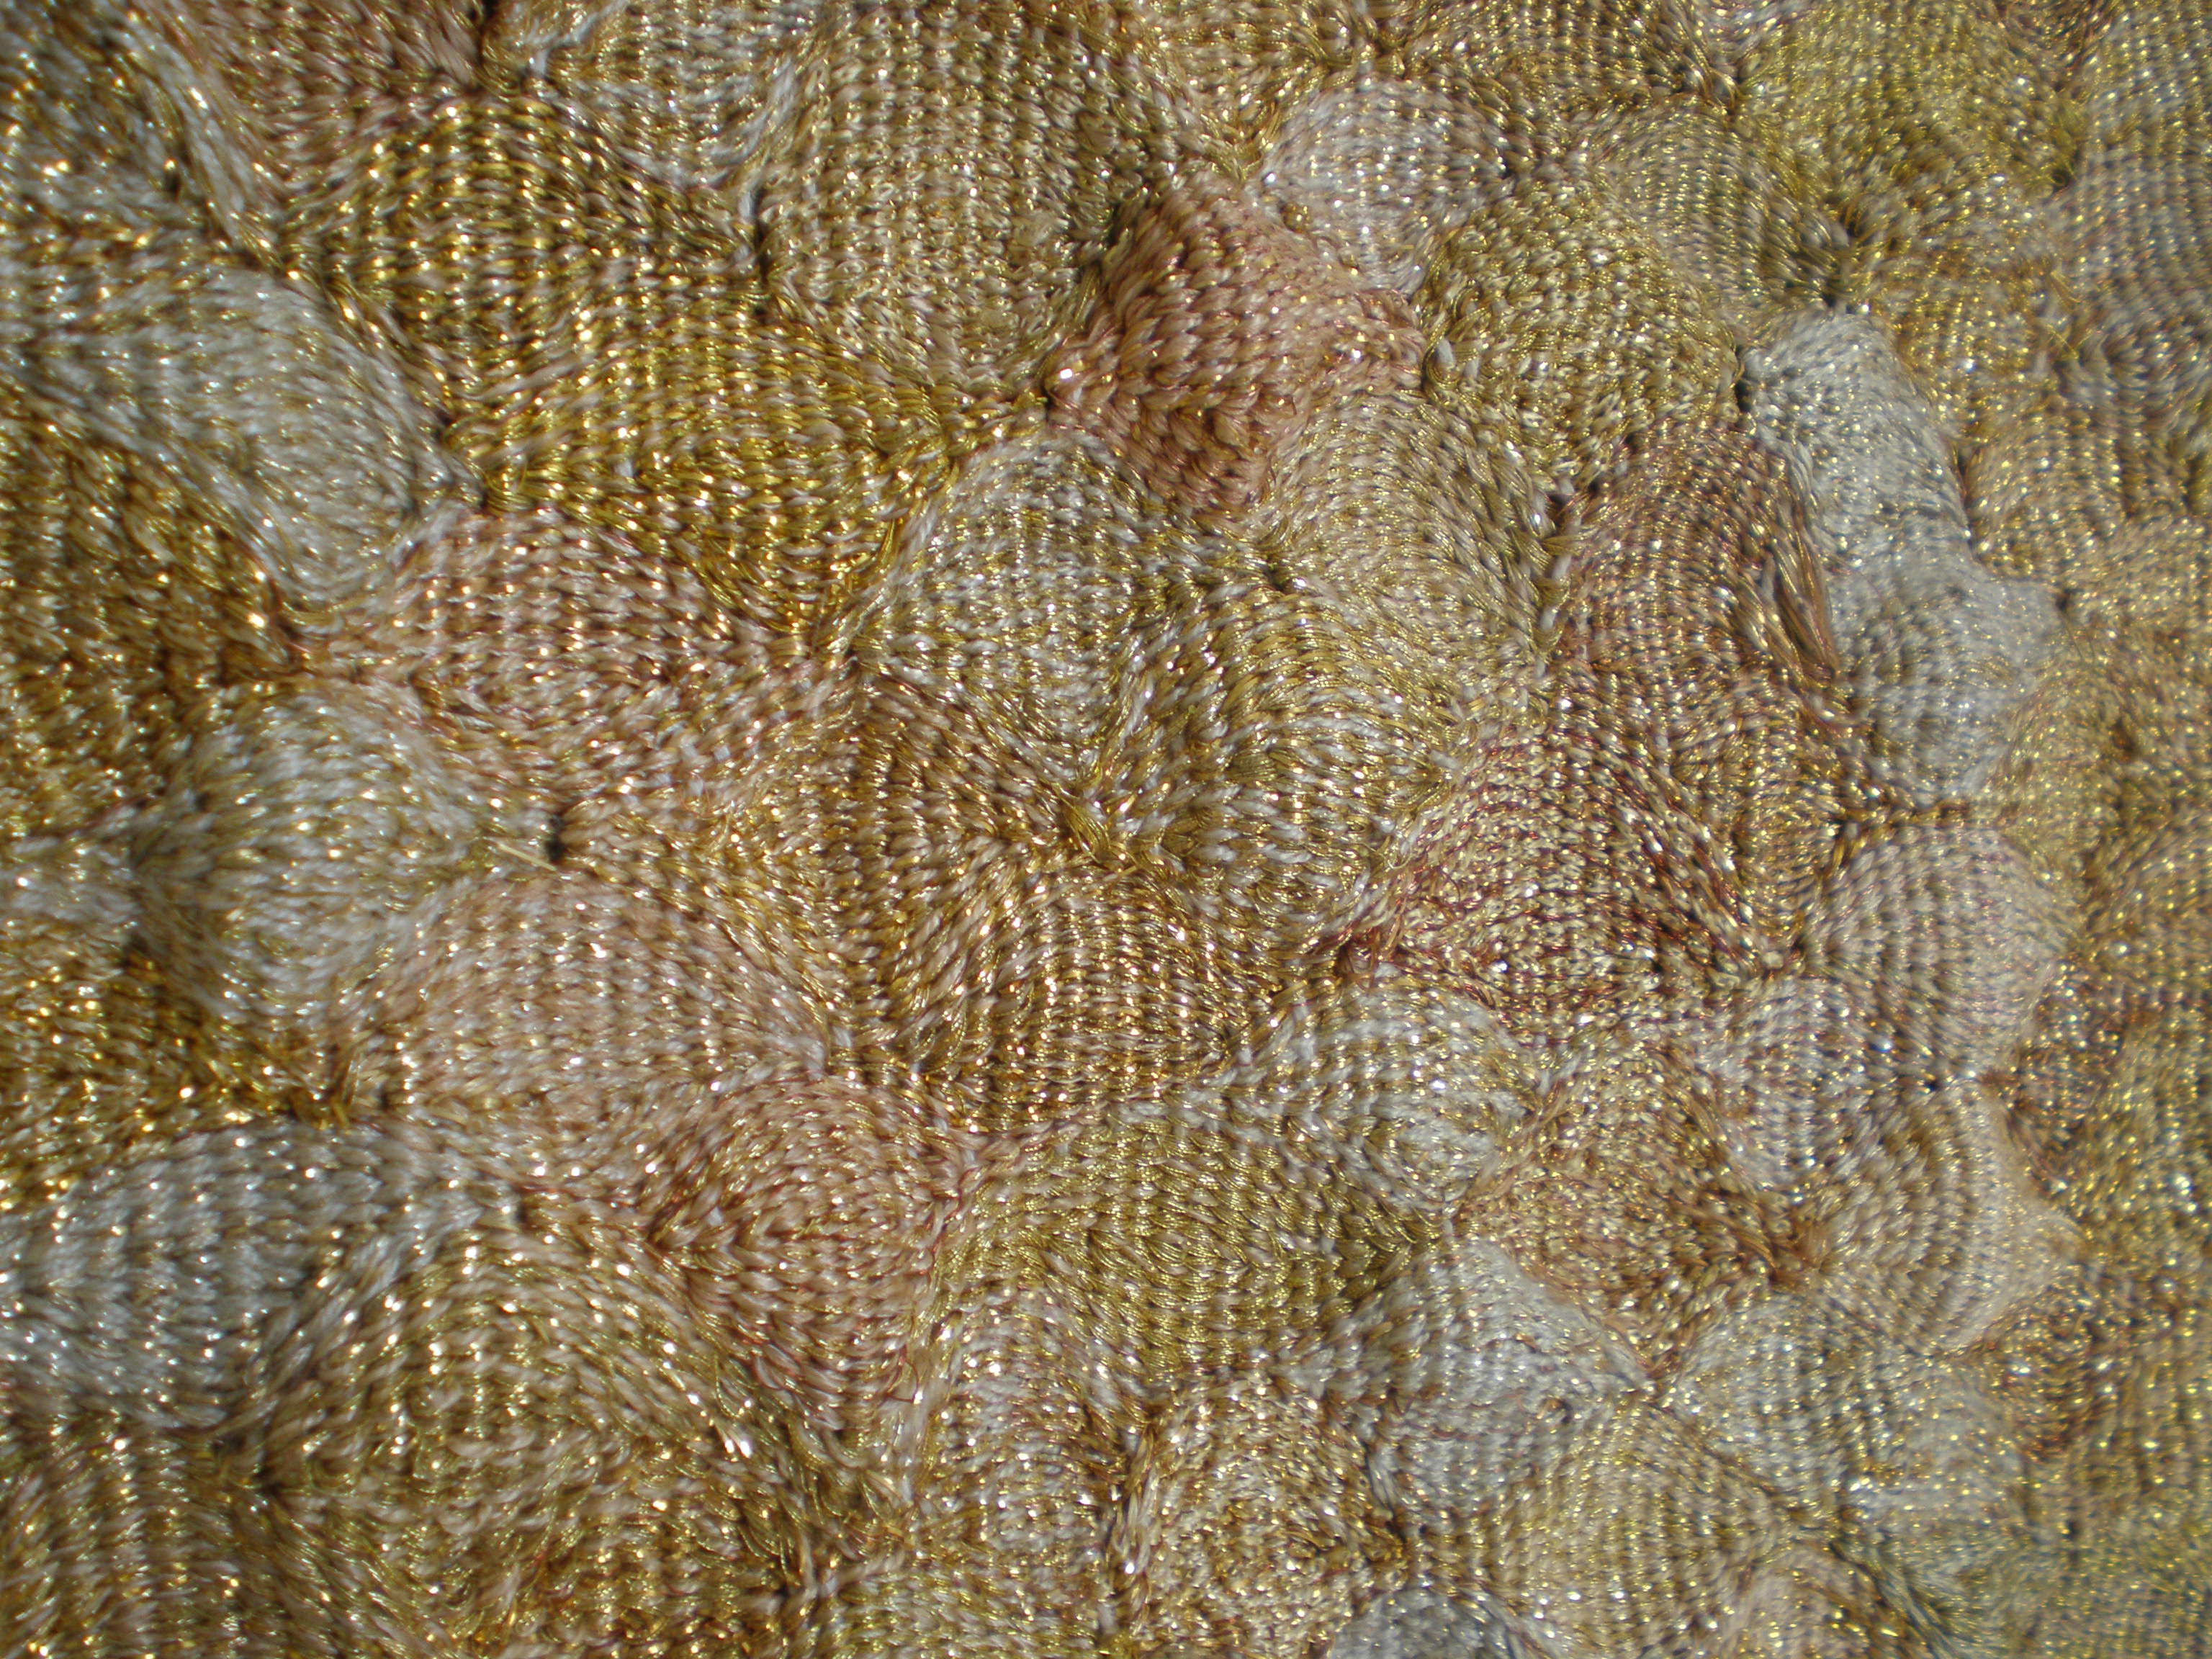 A 'Gold' undulating surface